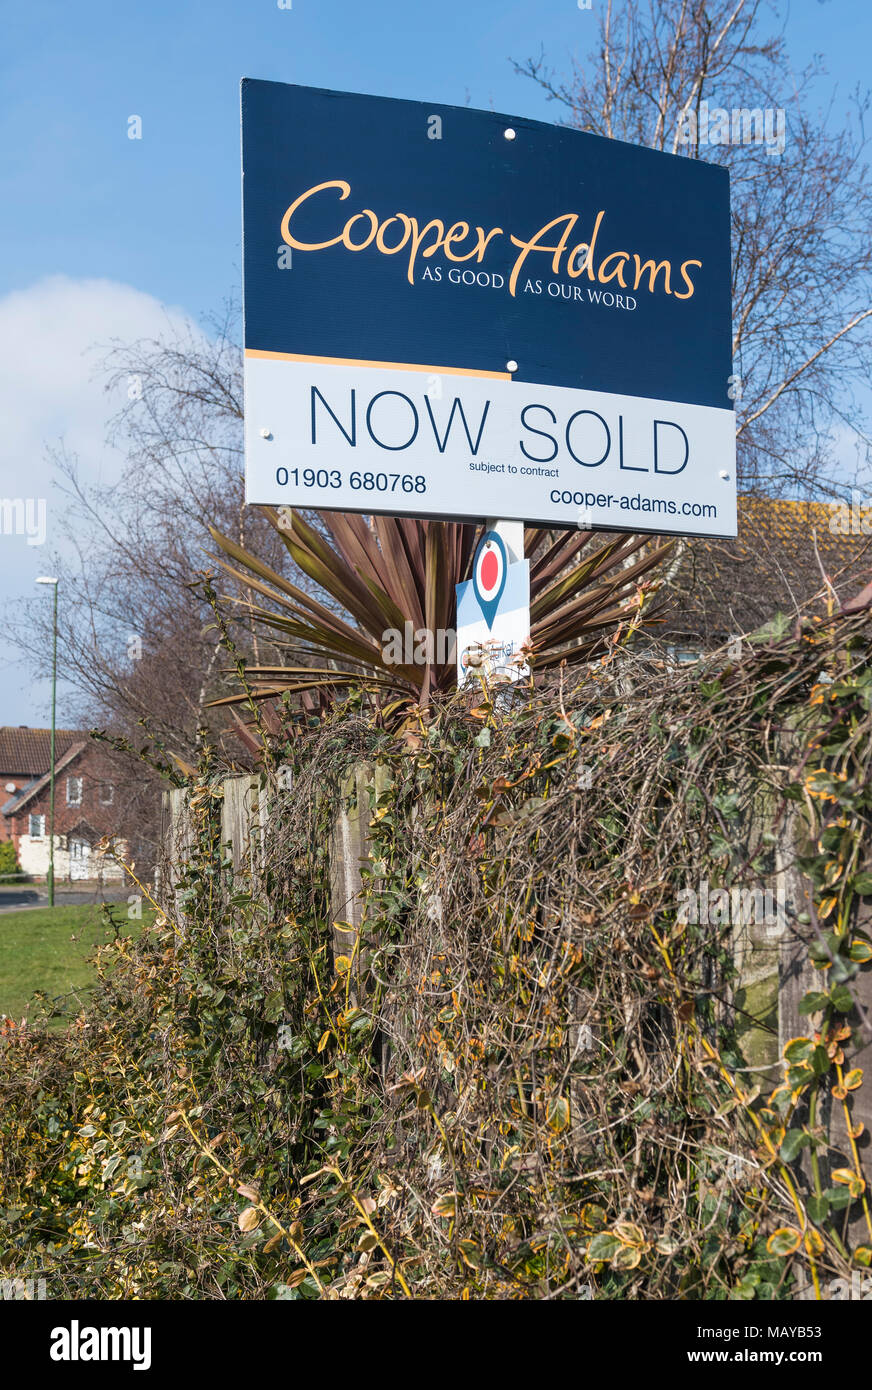 House now sold sign from Cooper Adams estate agents in England, UK. - Stock Image